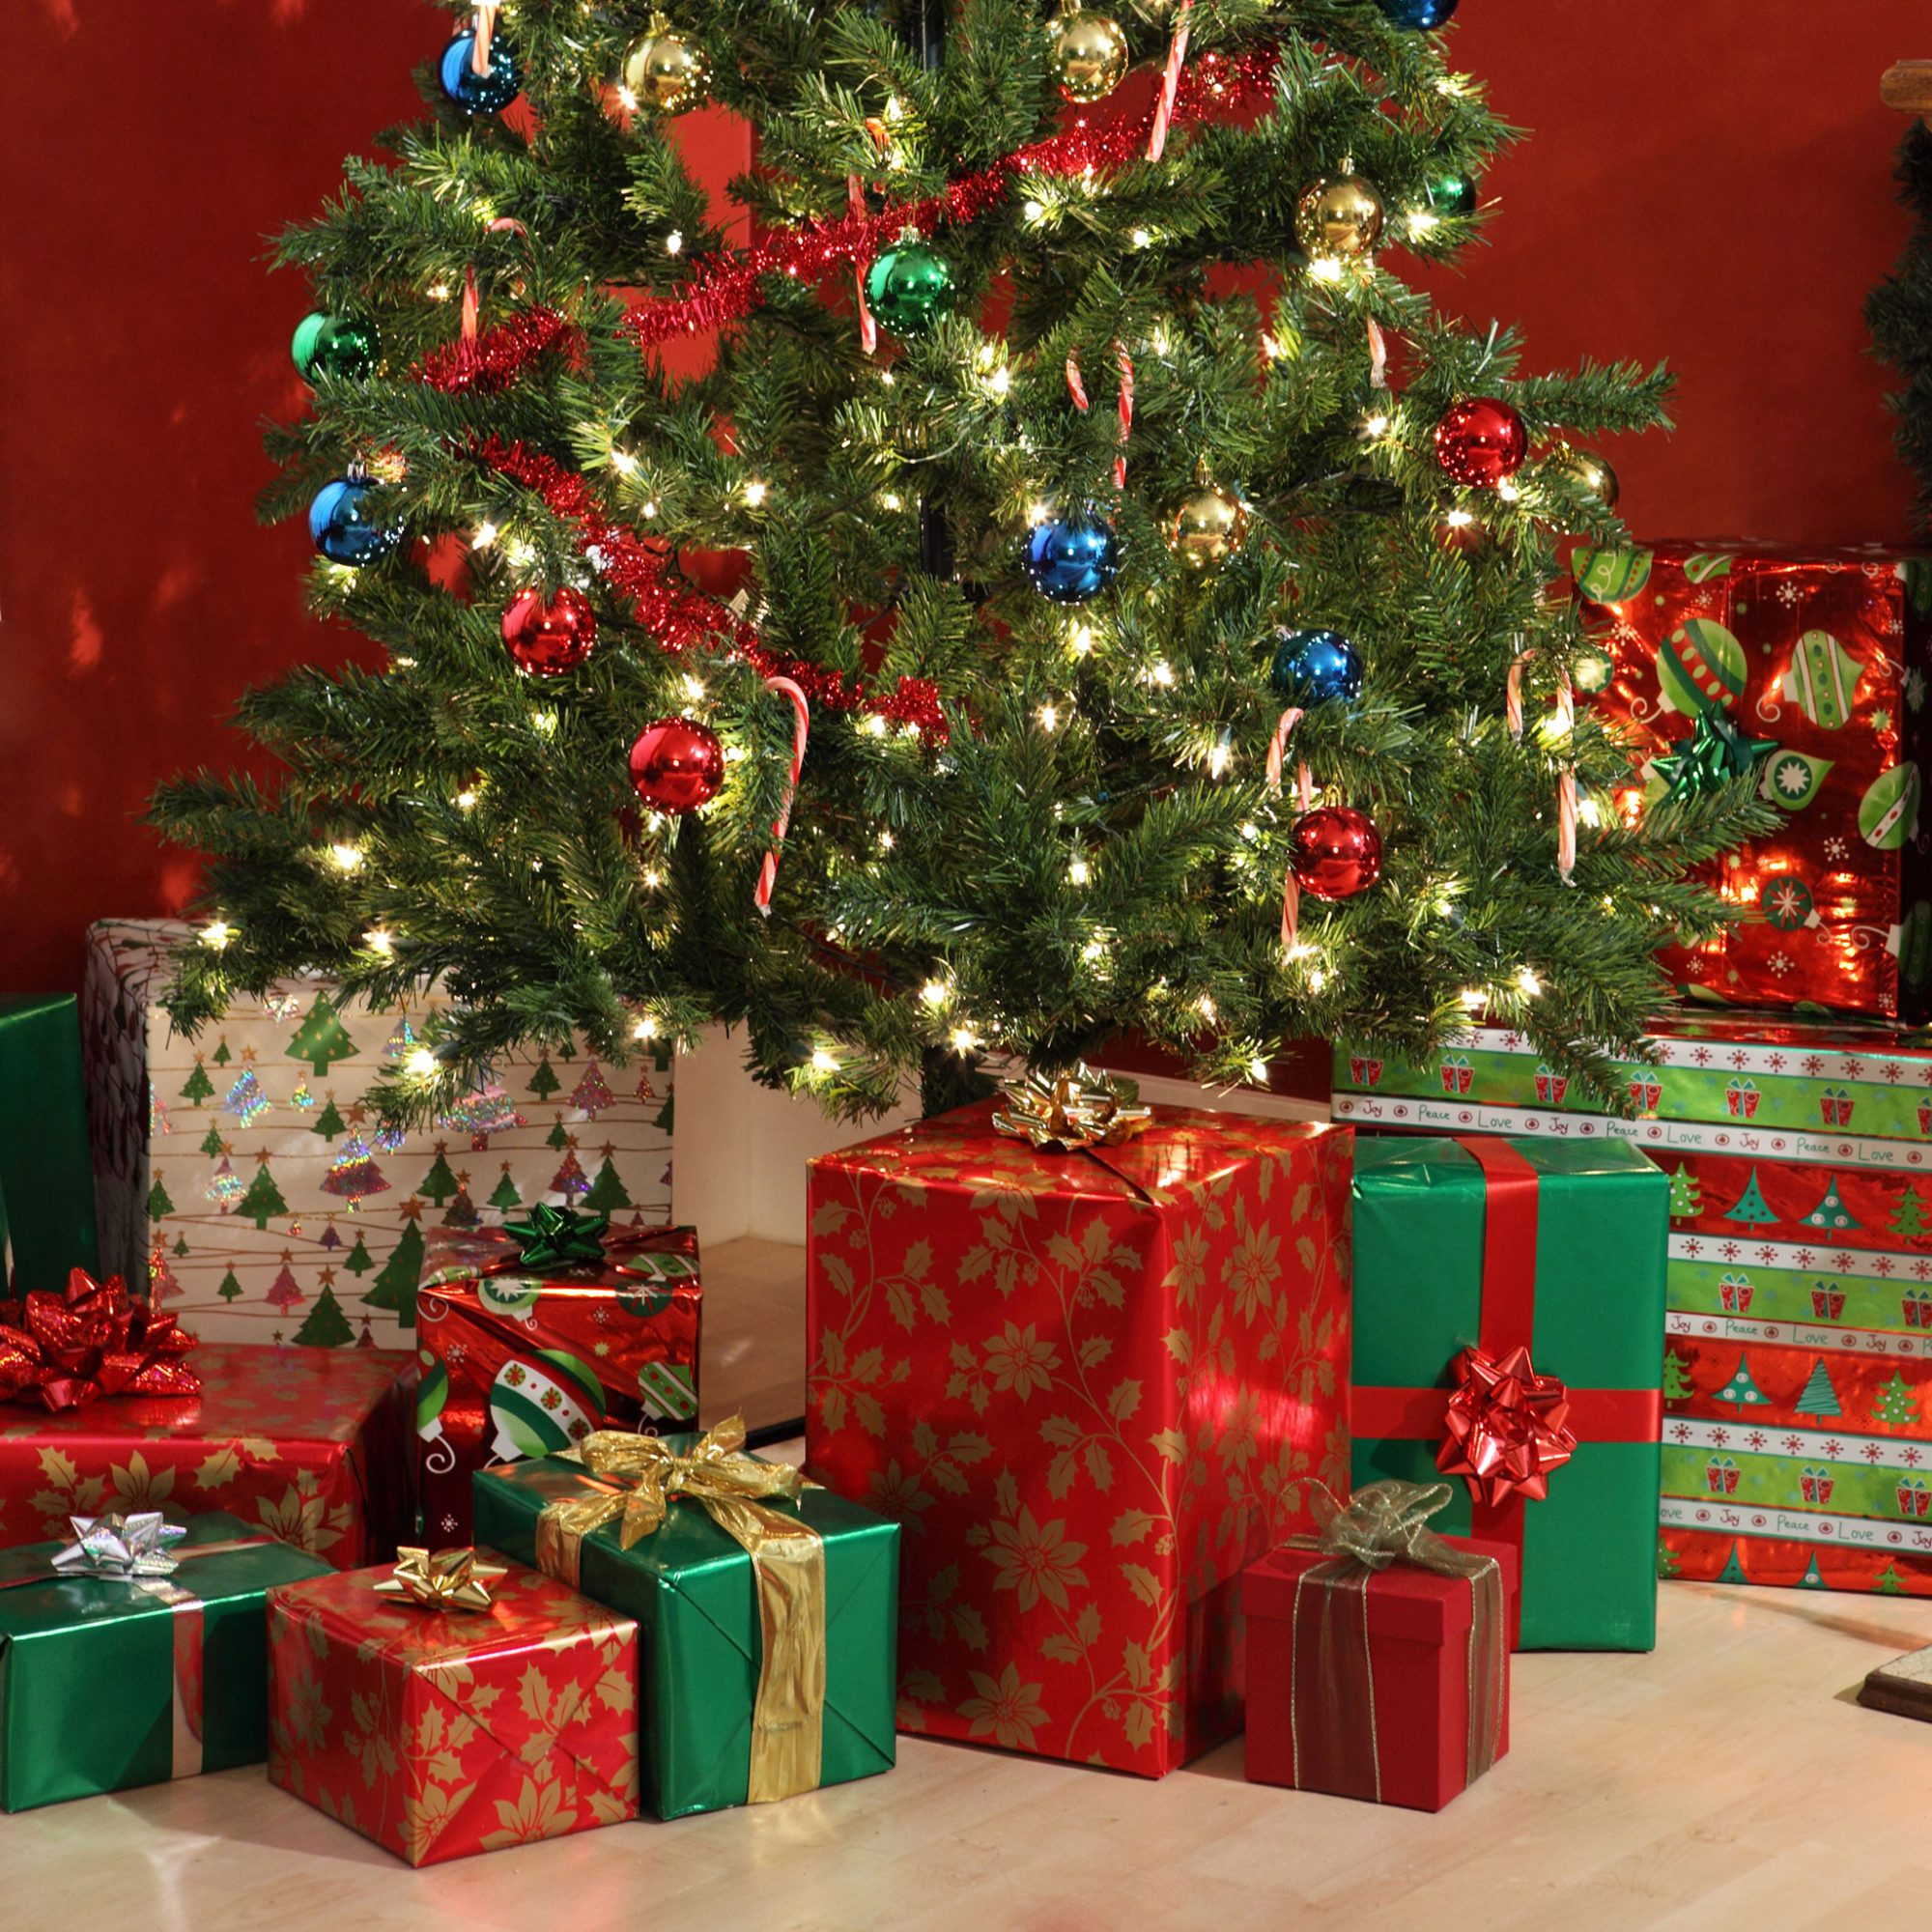 Why Do We Have Christmas Trees For Christmas: Smart Christmas Trees May Help You Go Green For The